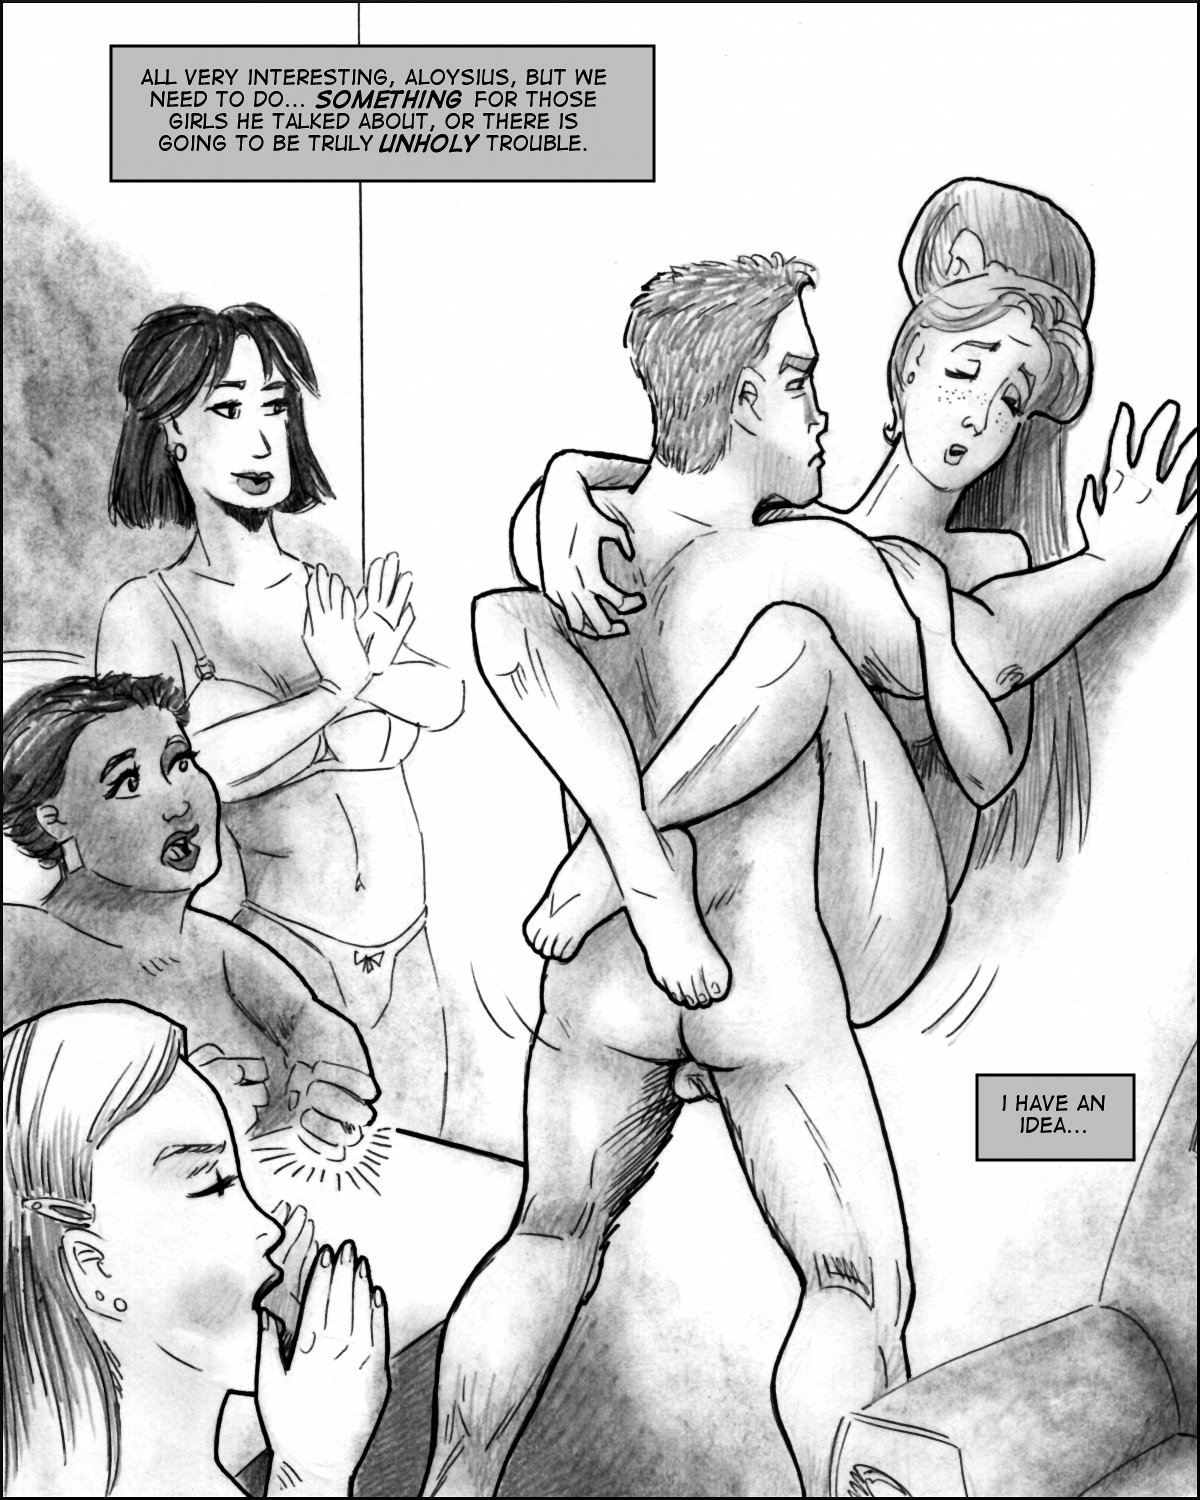 Samson fucks a naked Noreen up against a wall while her roommates applaud.